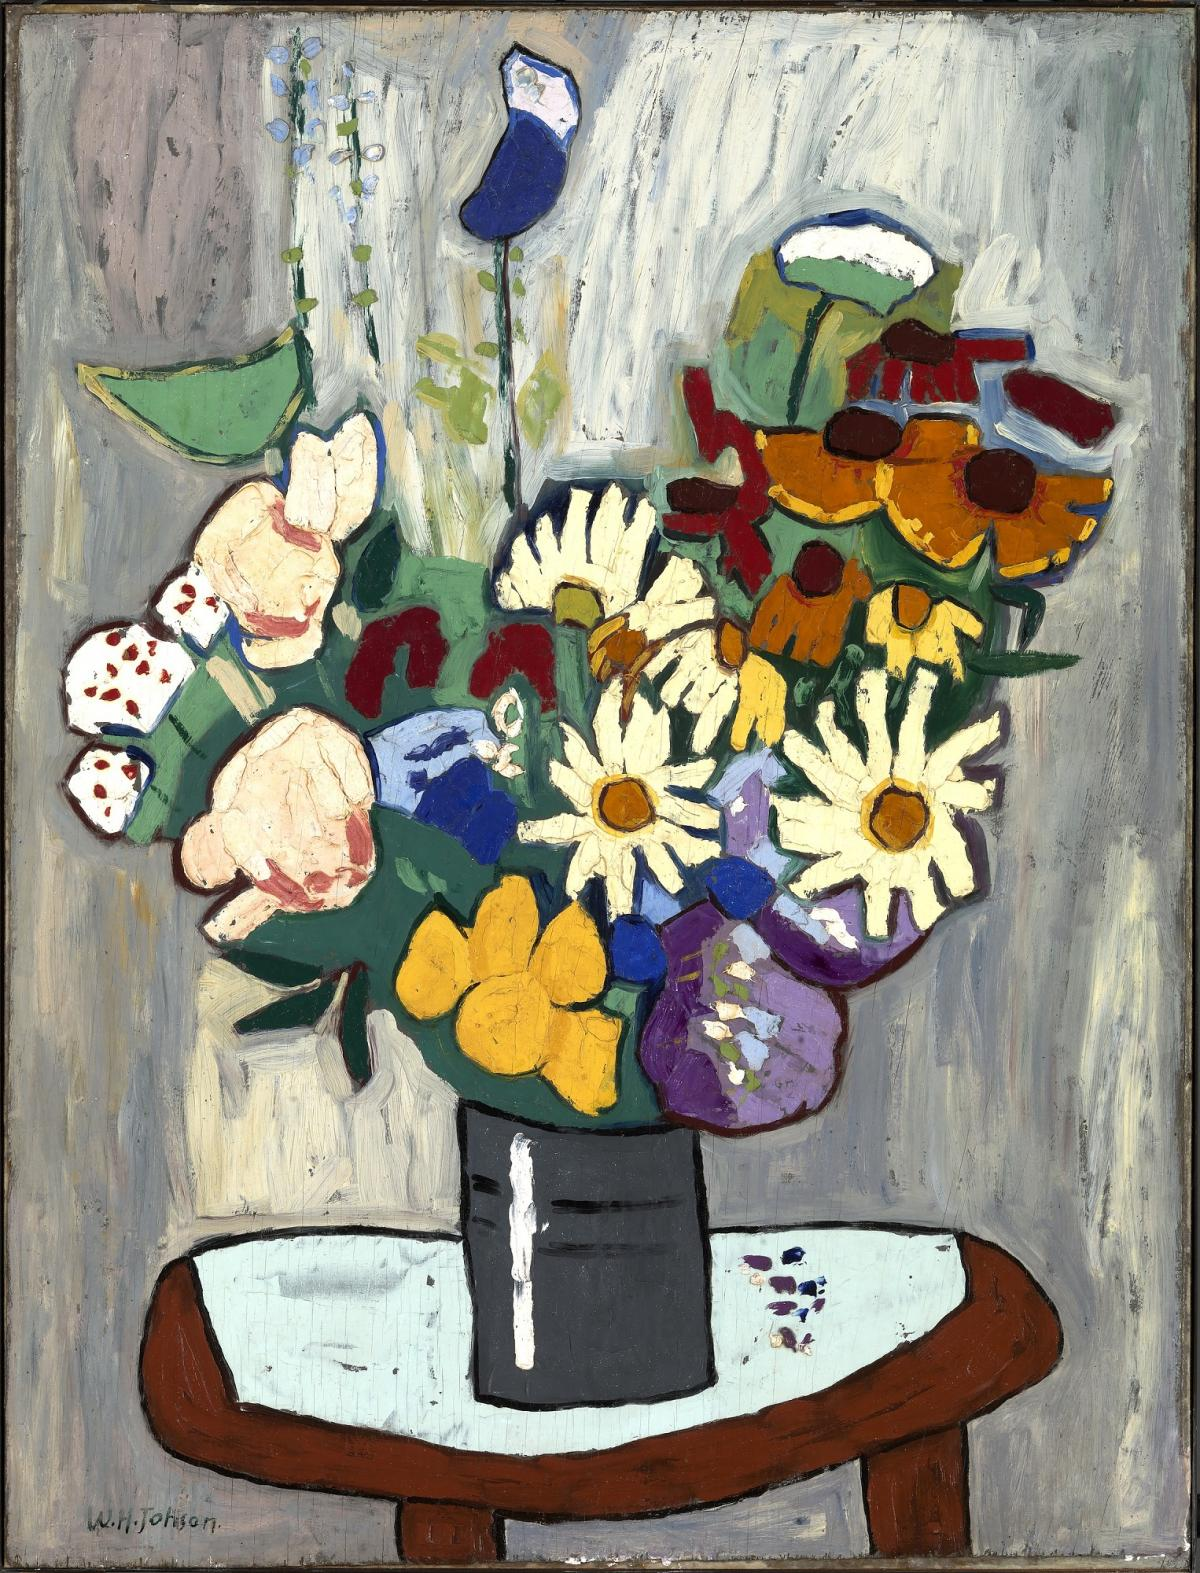 a painting of a bouquet of flowers